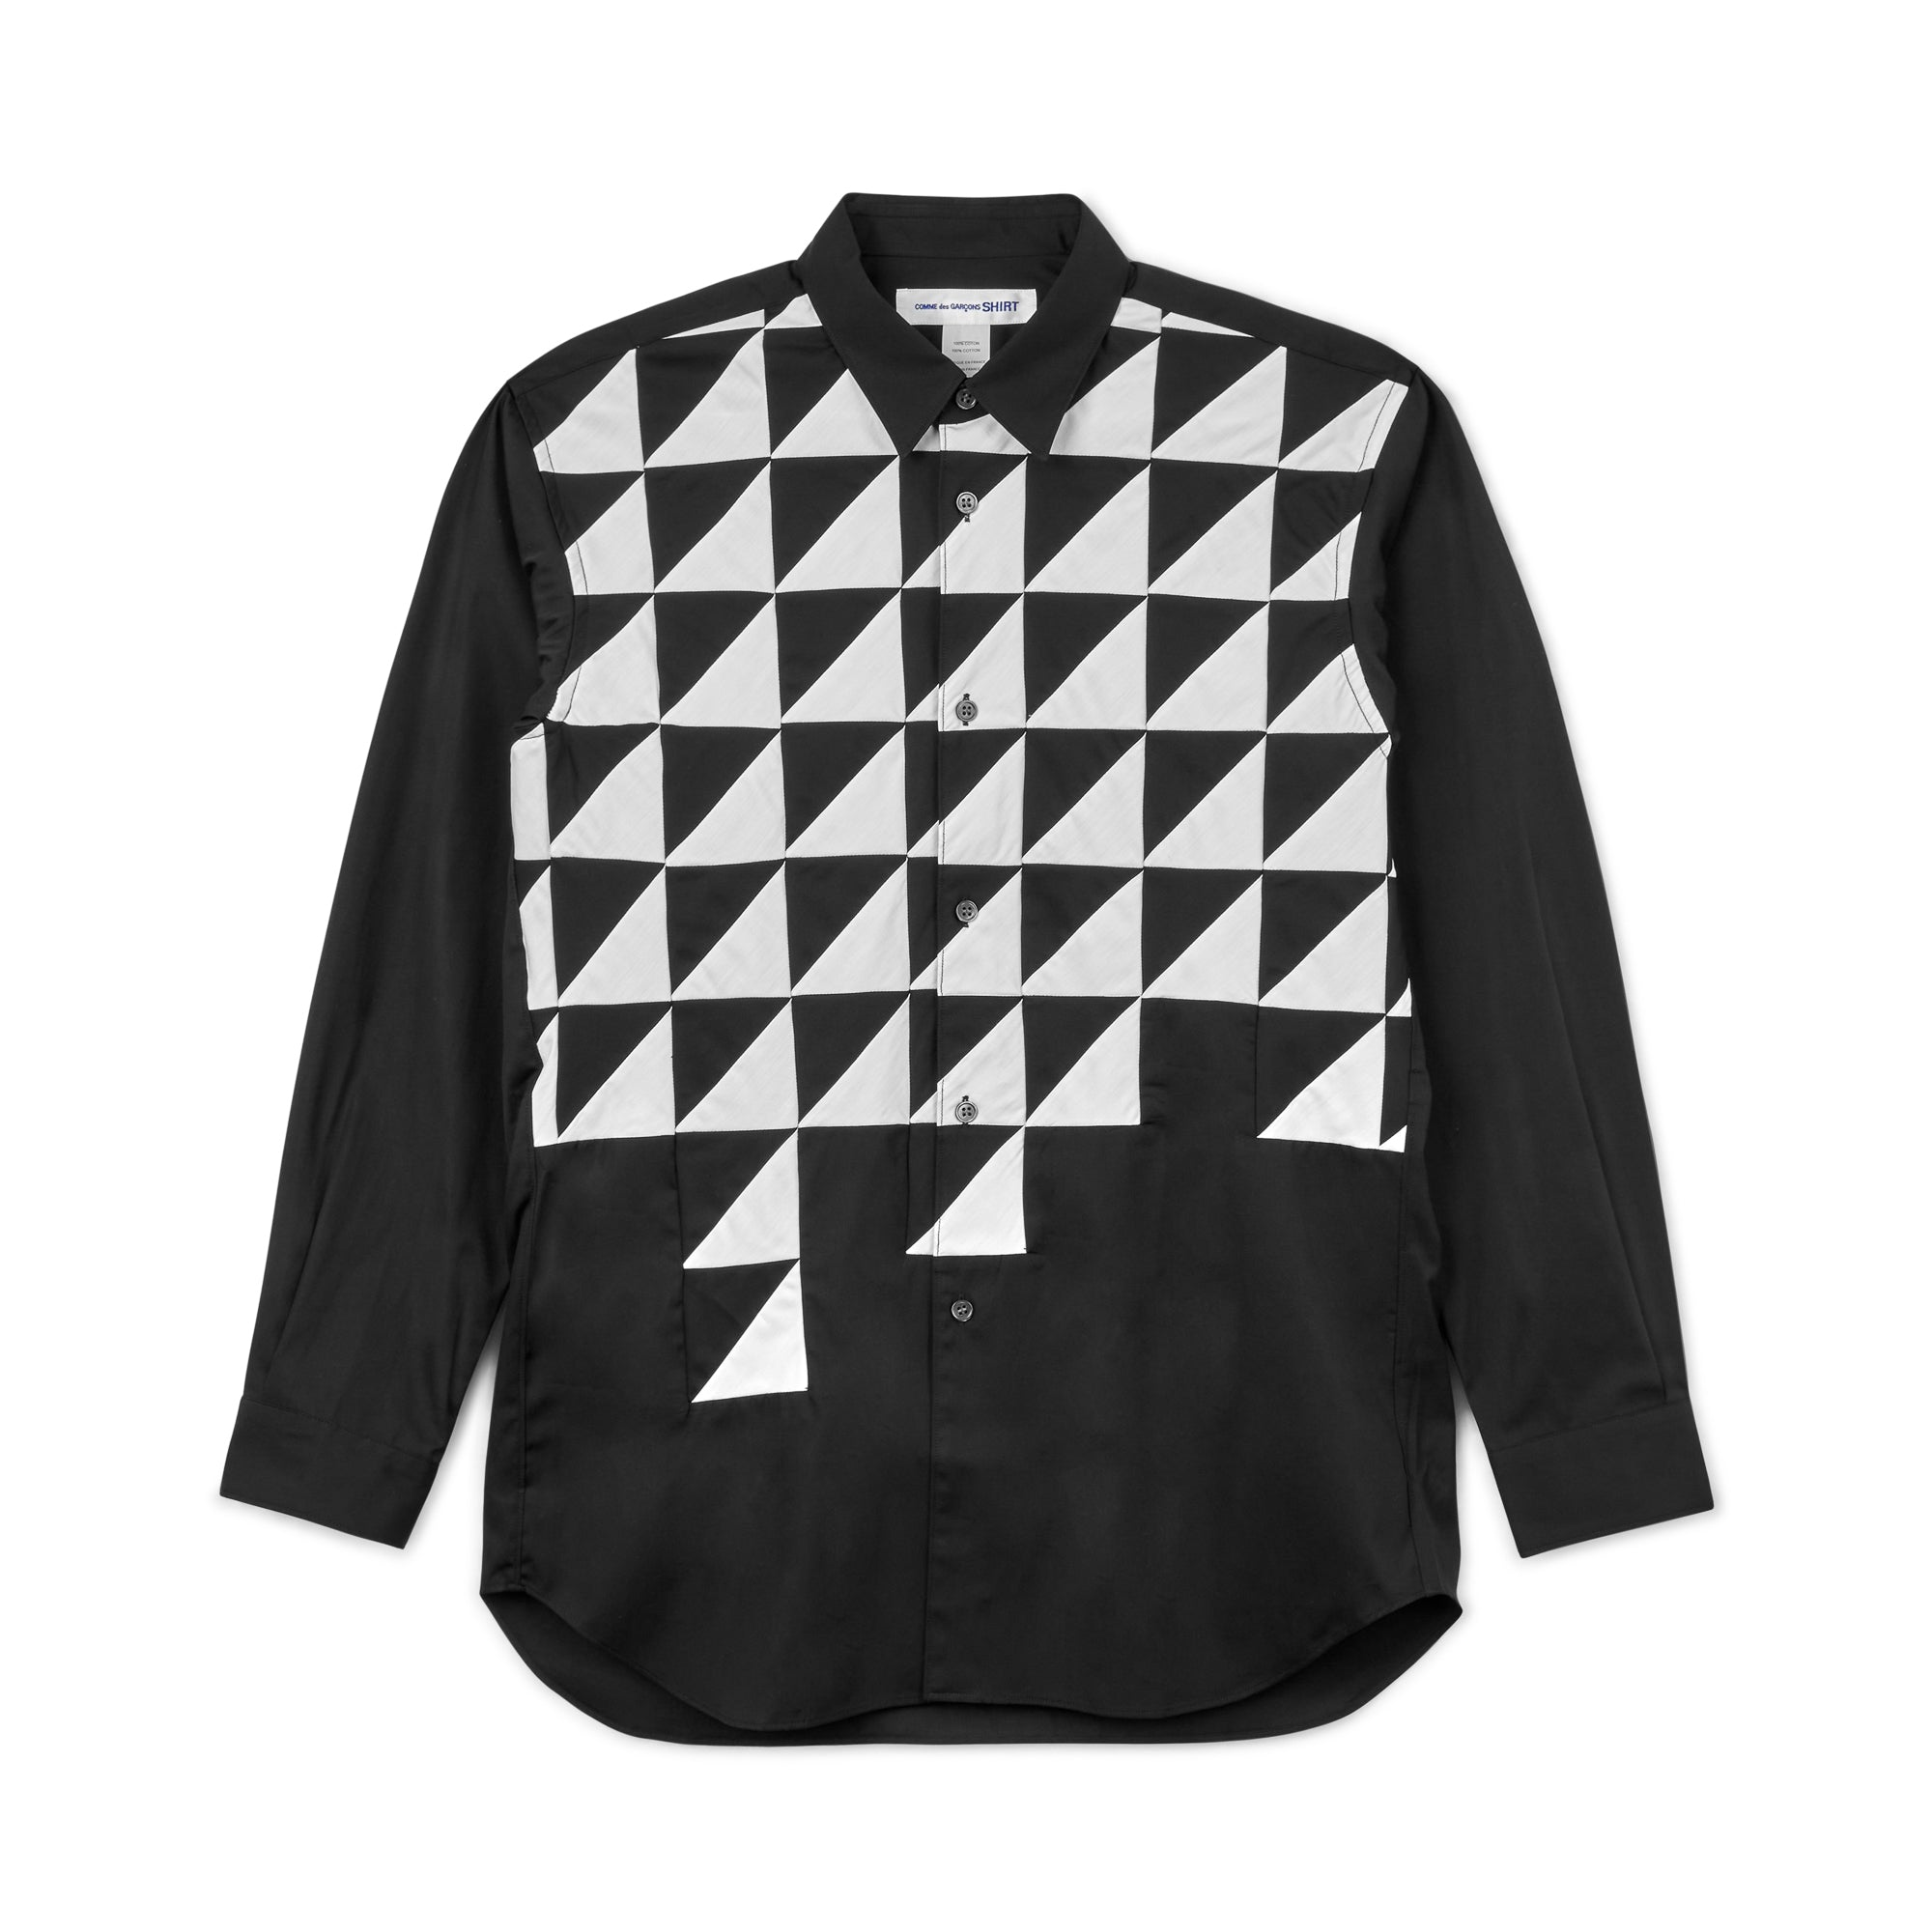 CDG Shirt Structured Long Sleeve Shirt (Black/White)